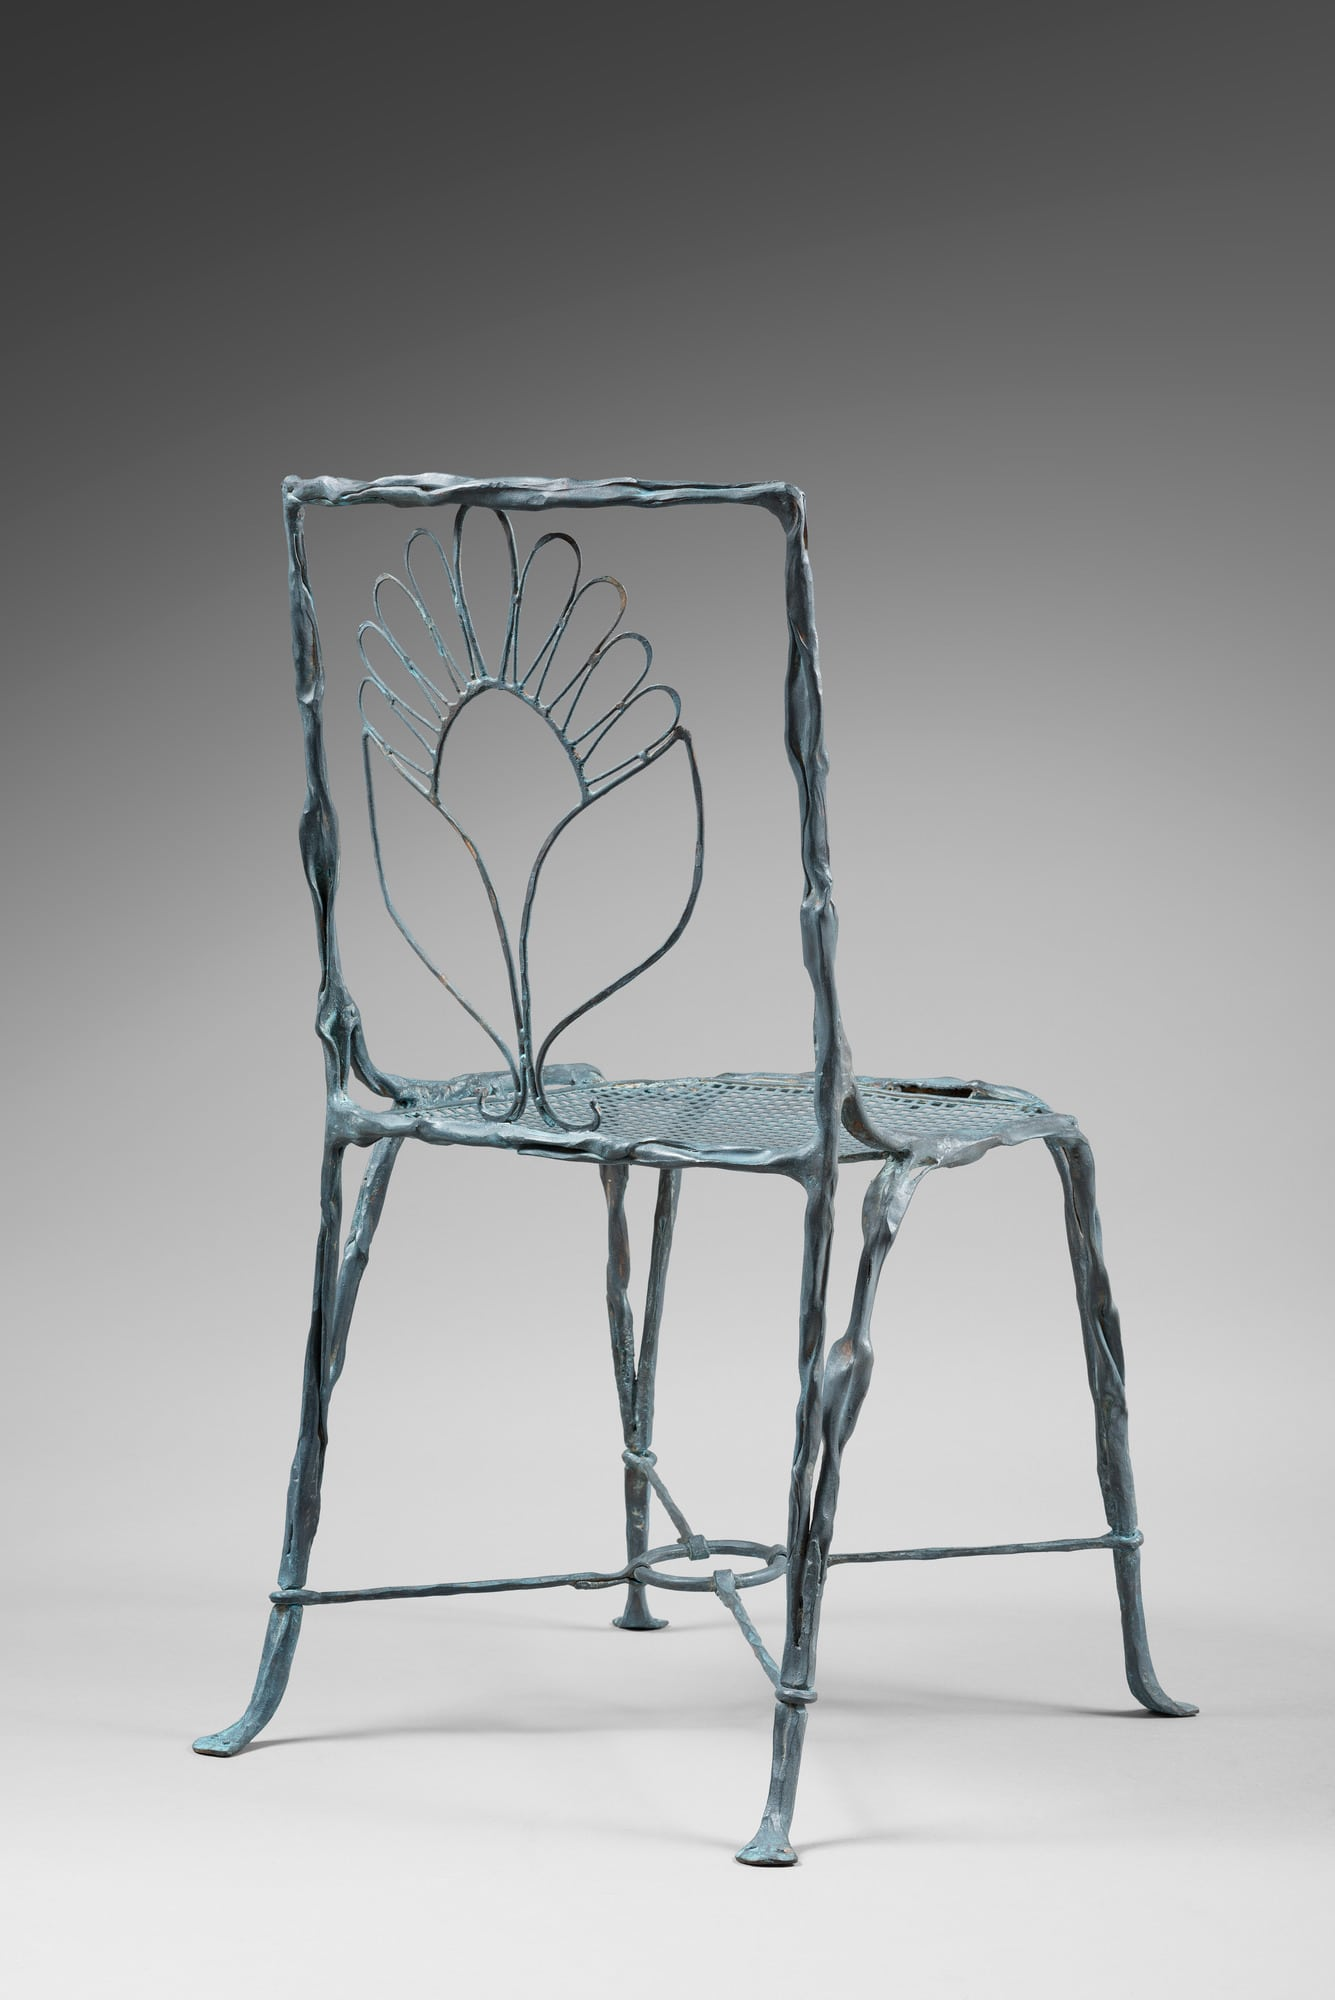 Set of four organic chairs, vue 02